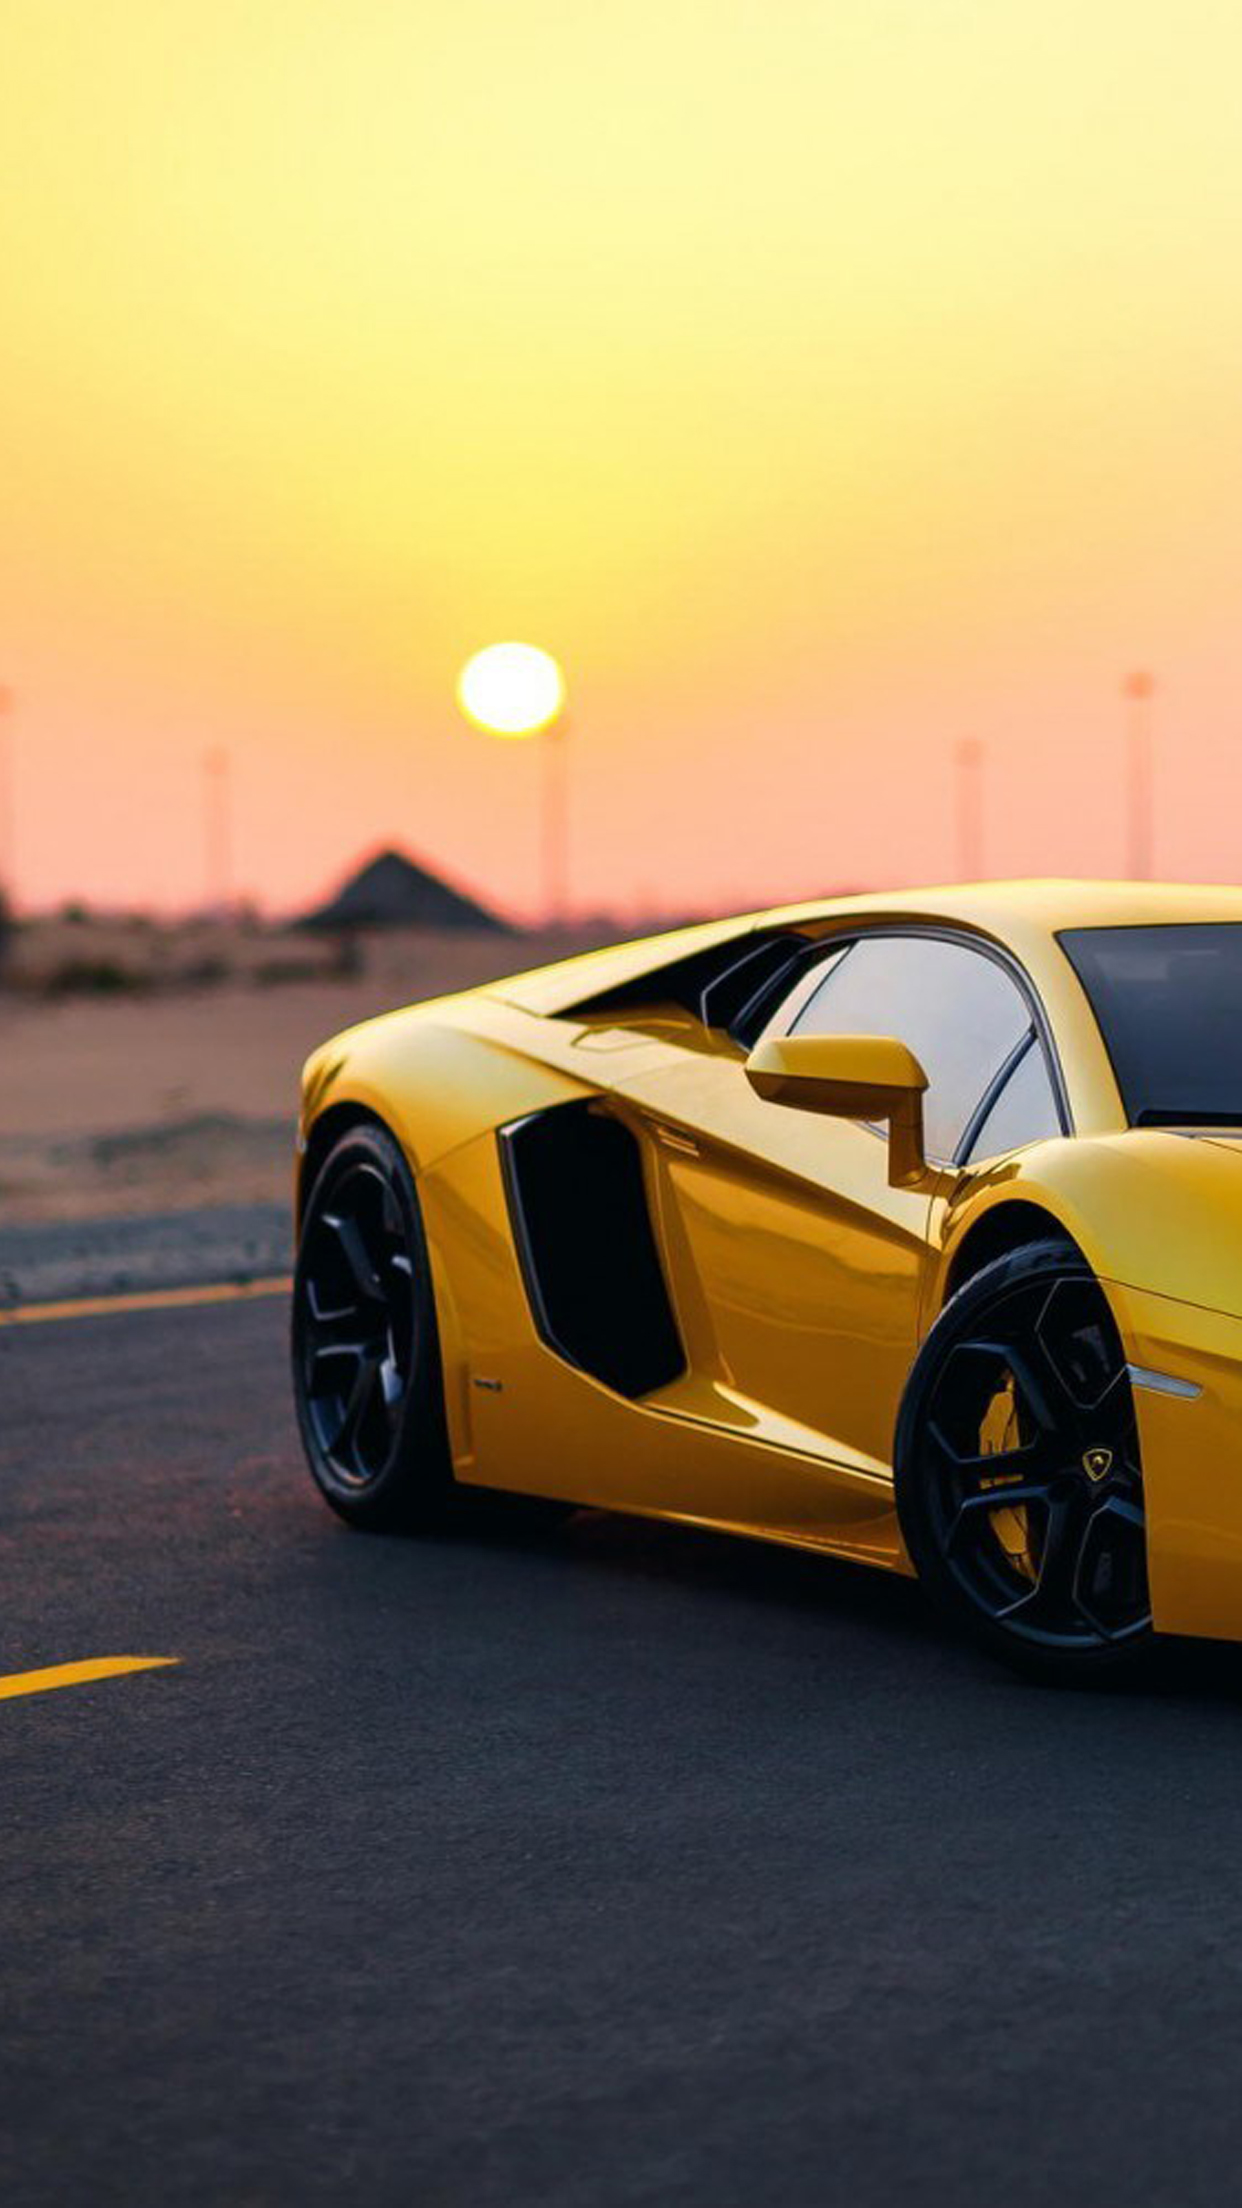 Supercar wallpapers for iPhone 1242x2208